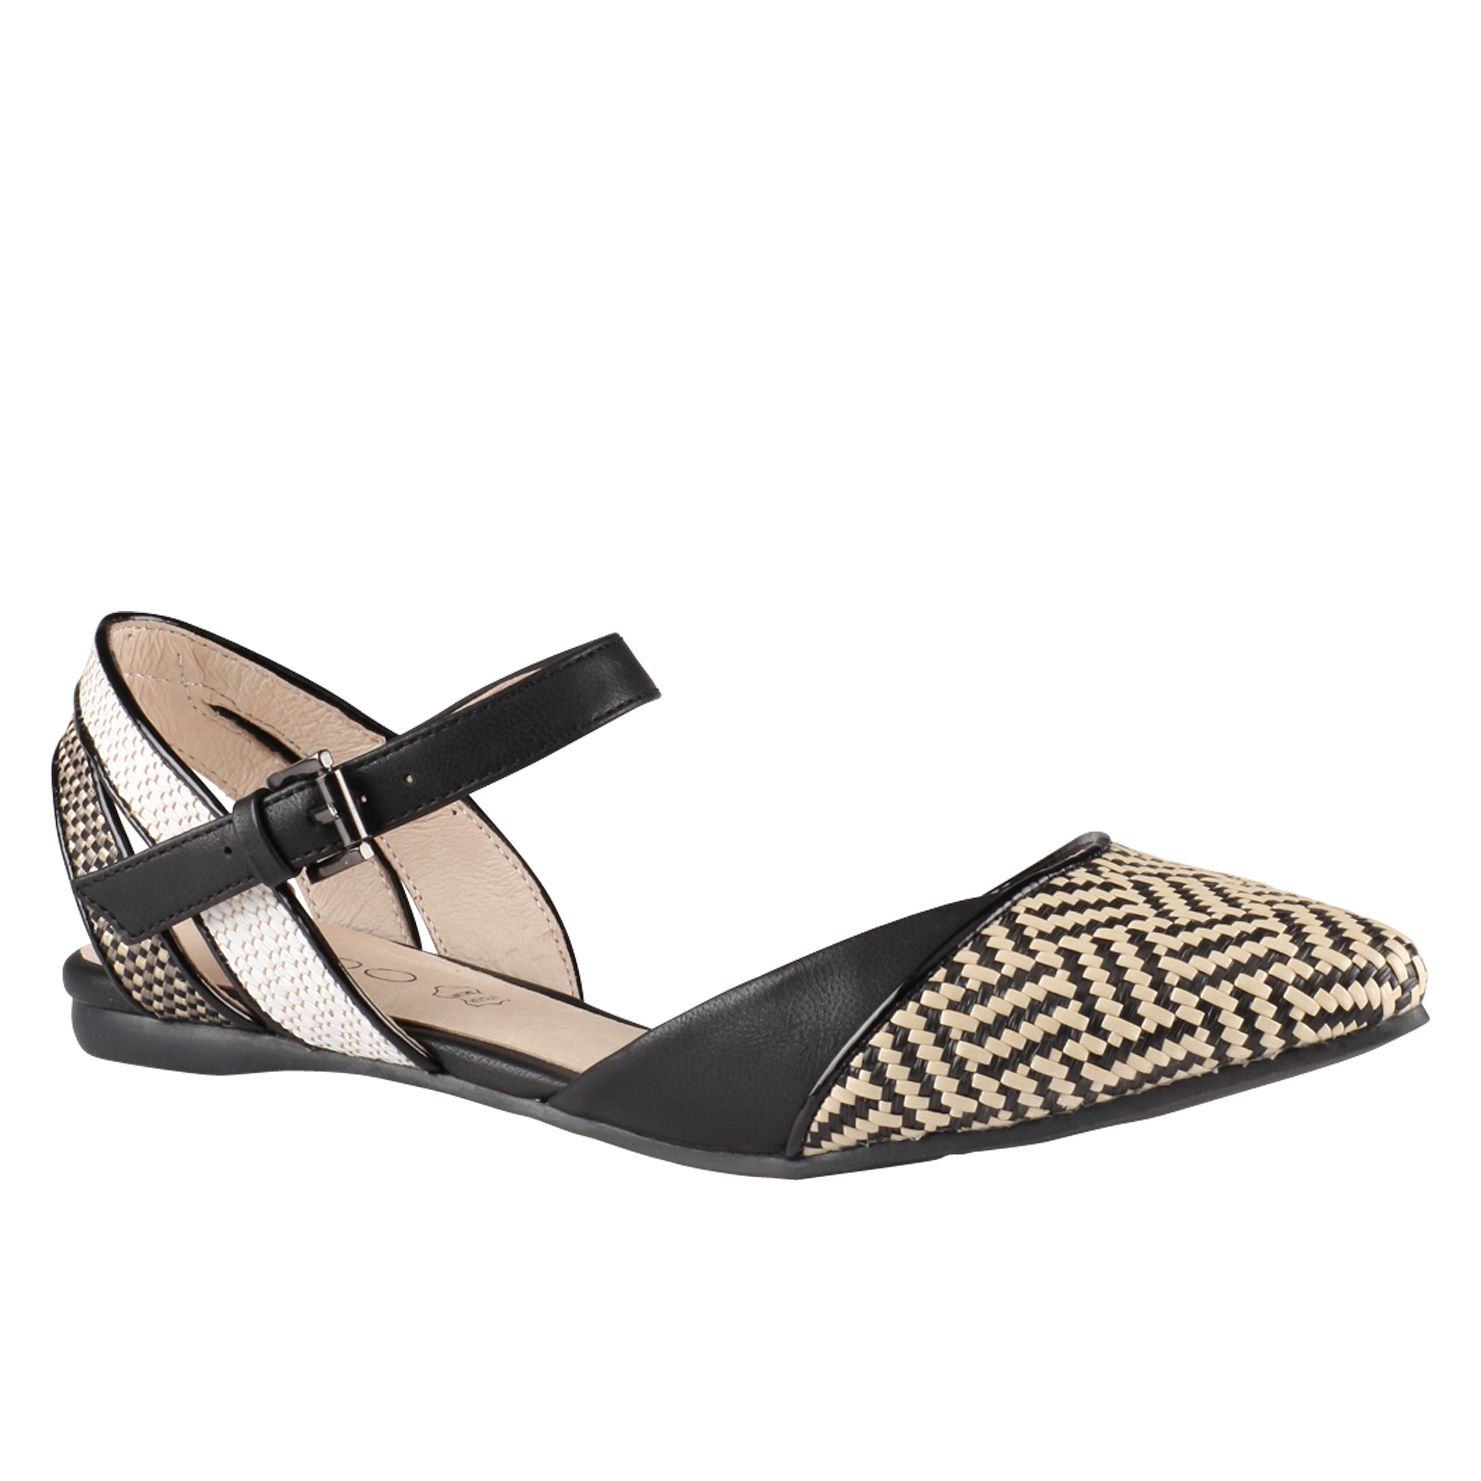 Primolano almond toe flat shoes